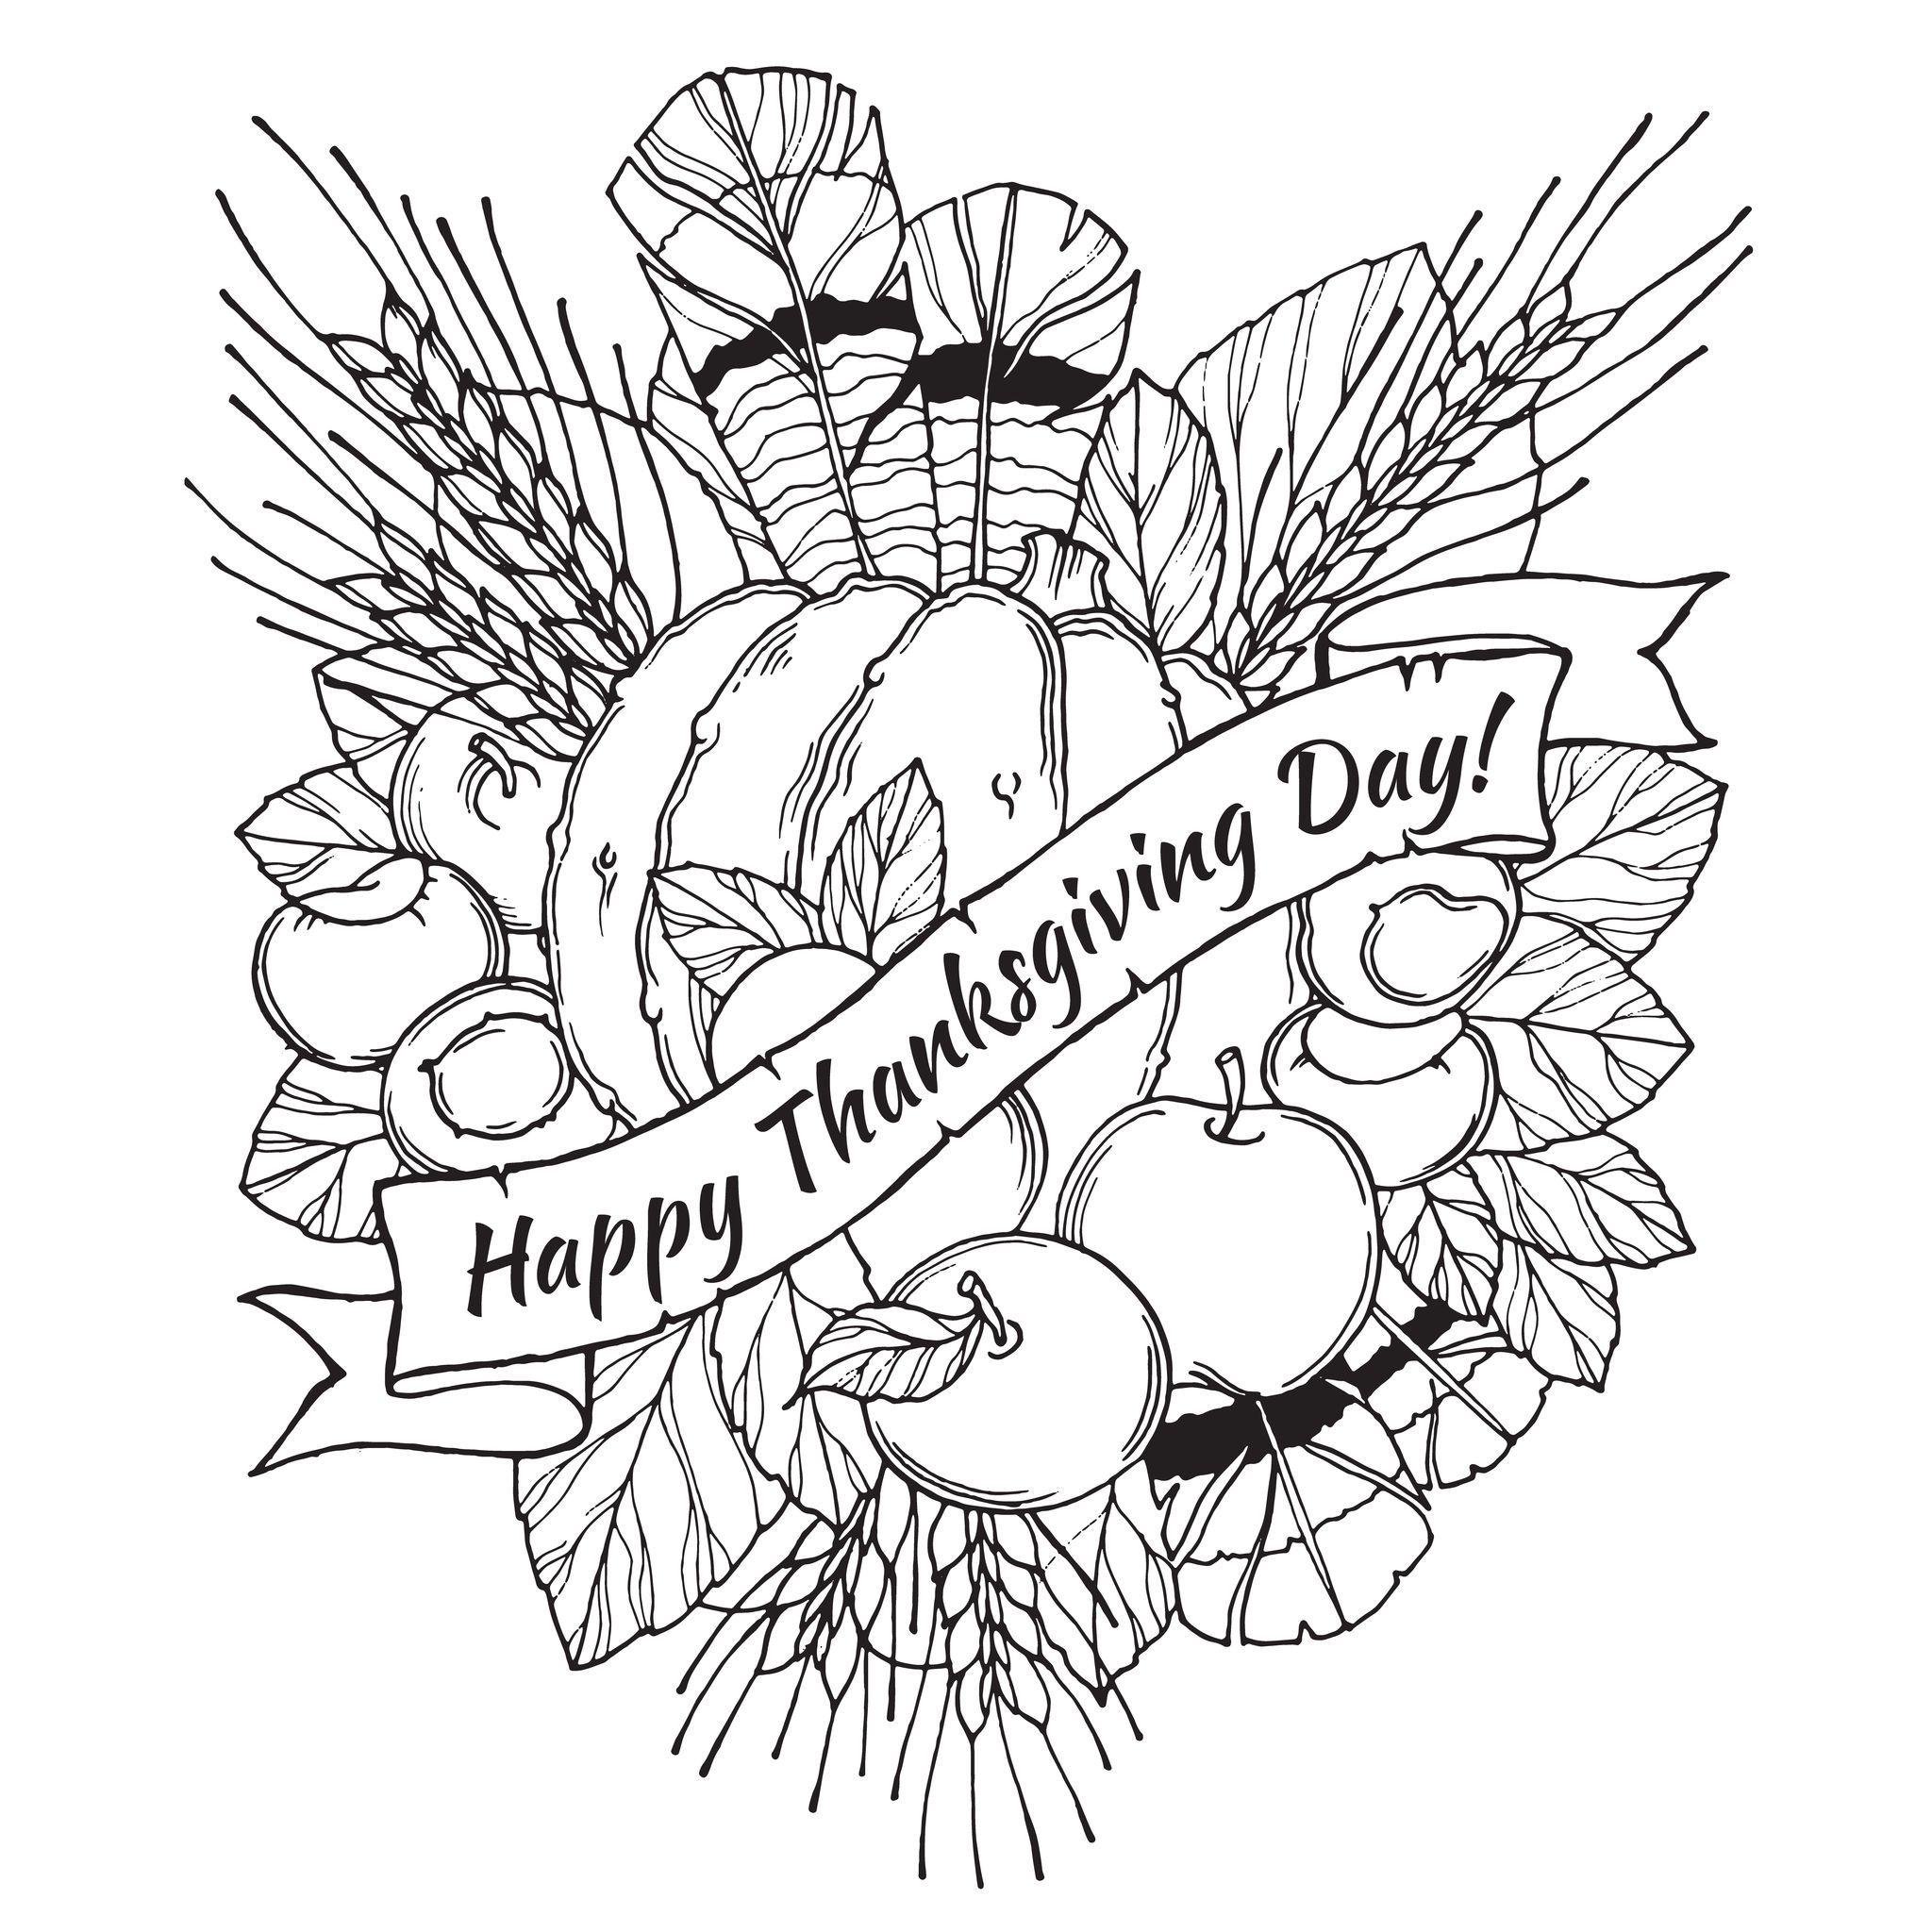 Pin by Nancy Chrimes on Coloring Pages  Pinterest  Thanksgiving